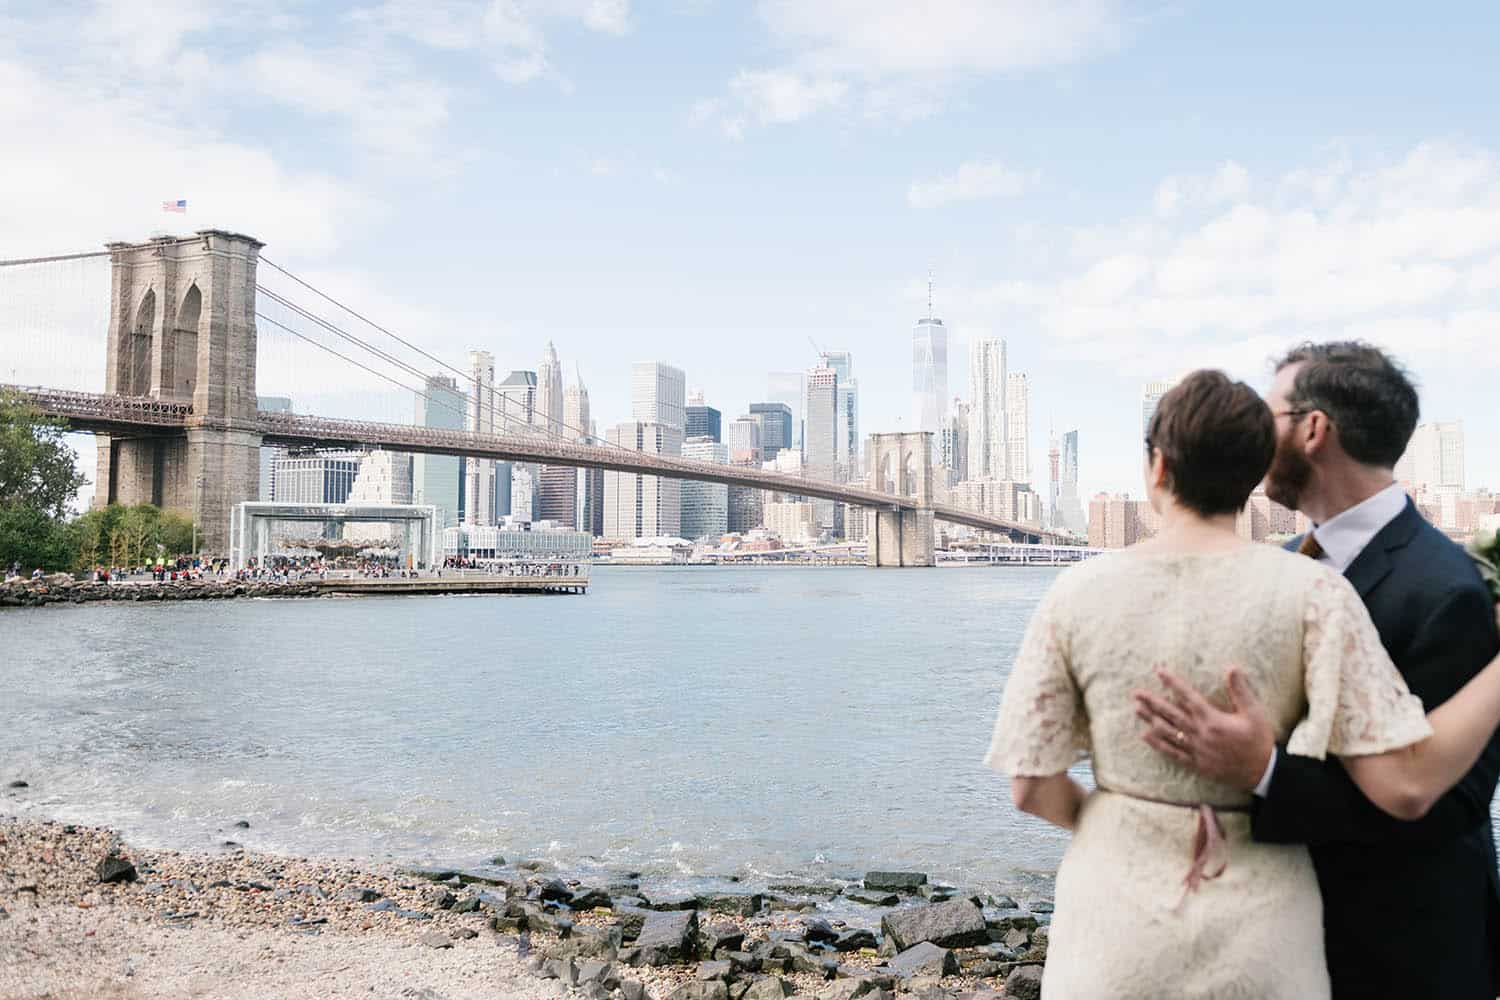 Brooklyn Bridge Park: one of the best places in New York to propose